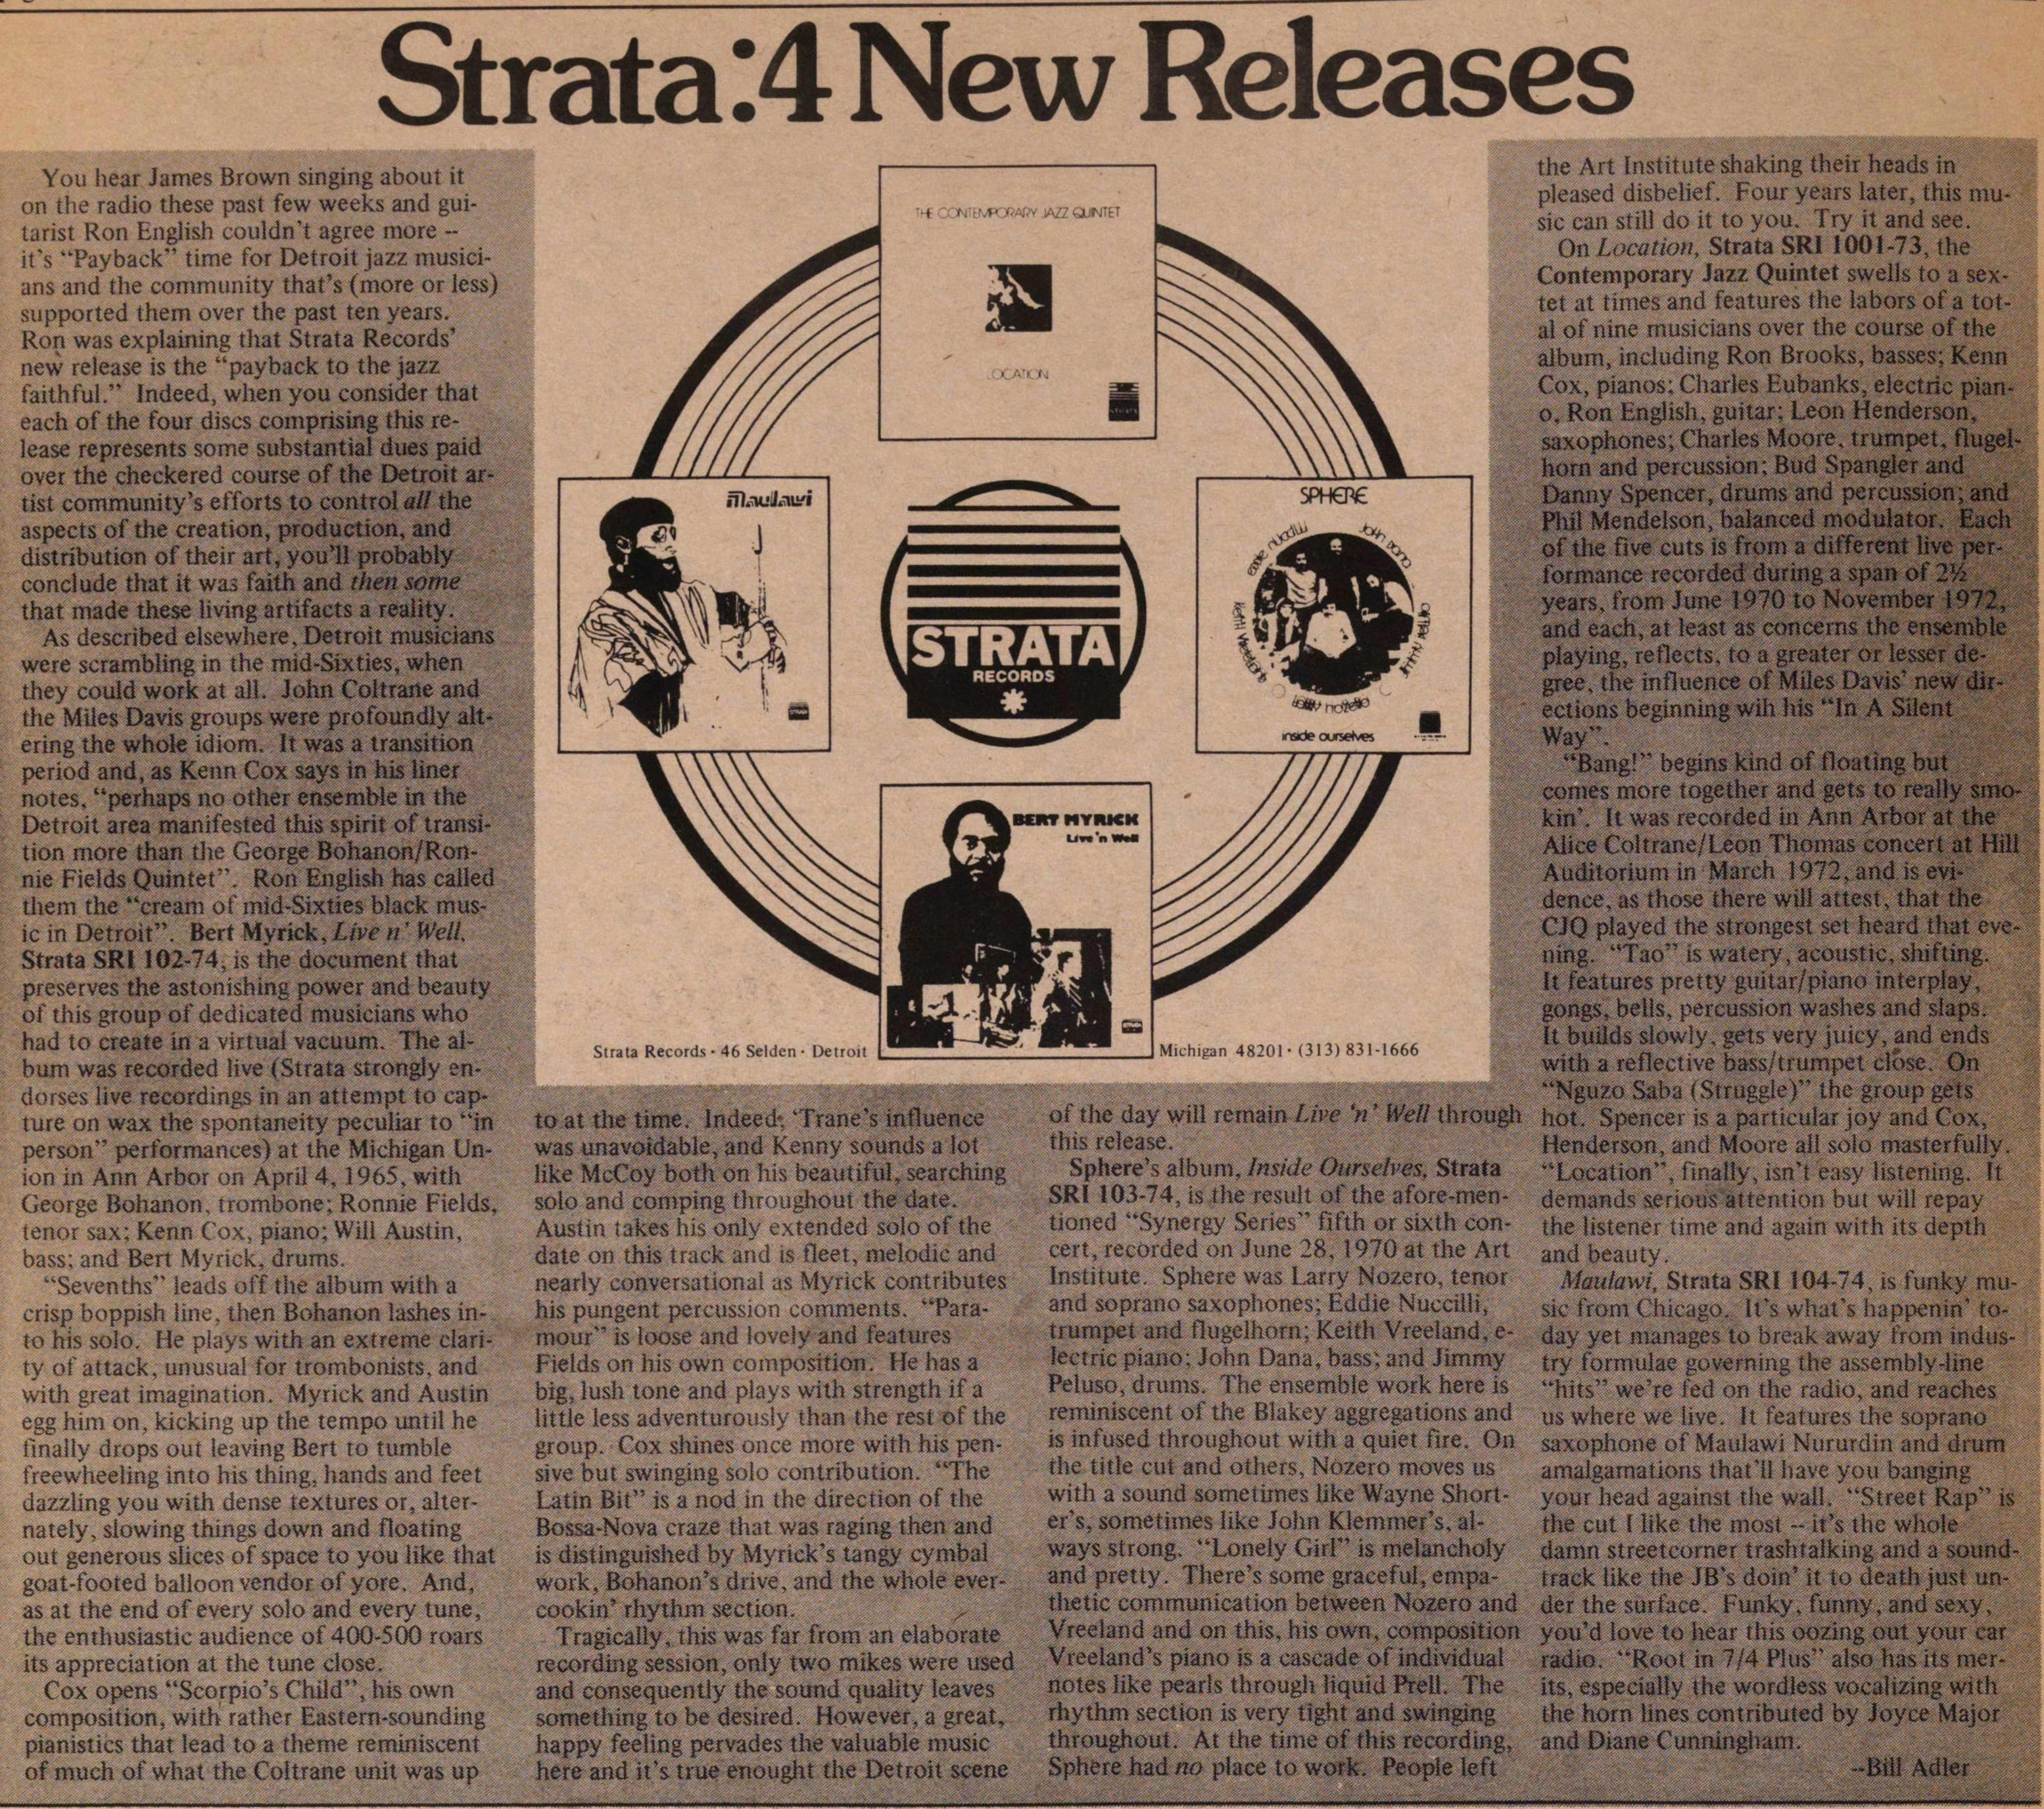 Strata: 4 New Releases image